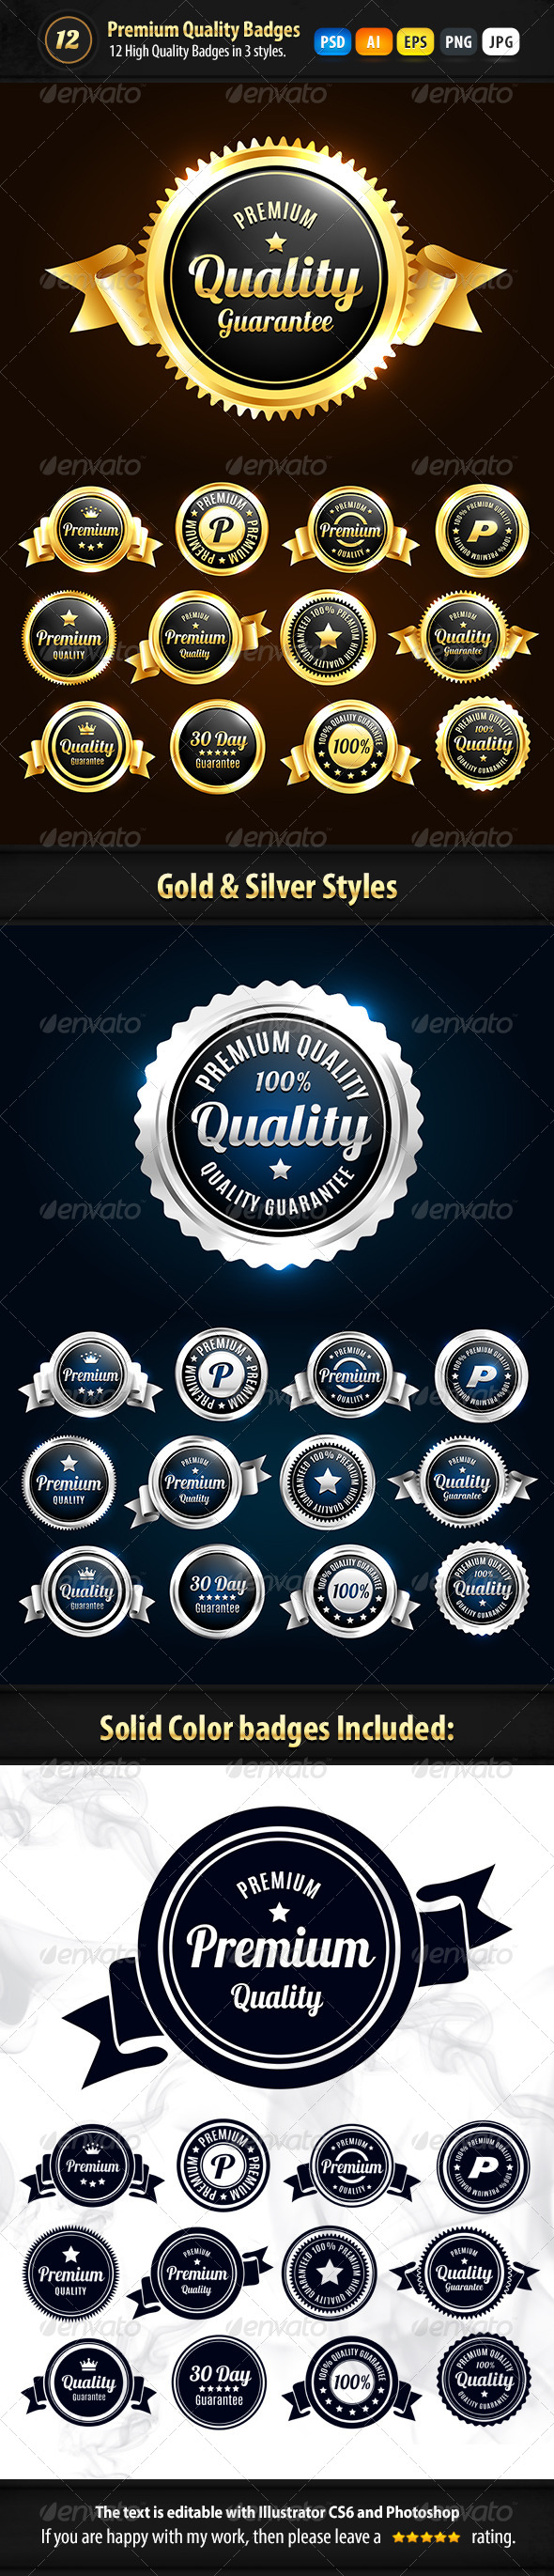 12 Premium Badges In 3 Styles - Badges & Stickers Web Elements